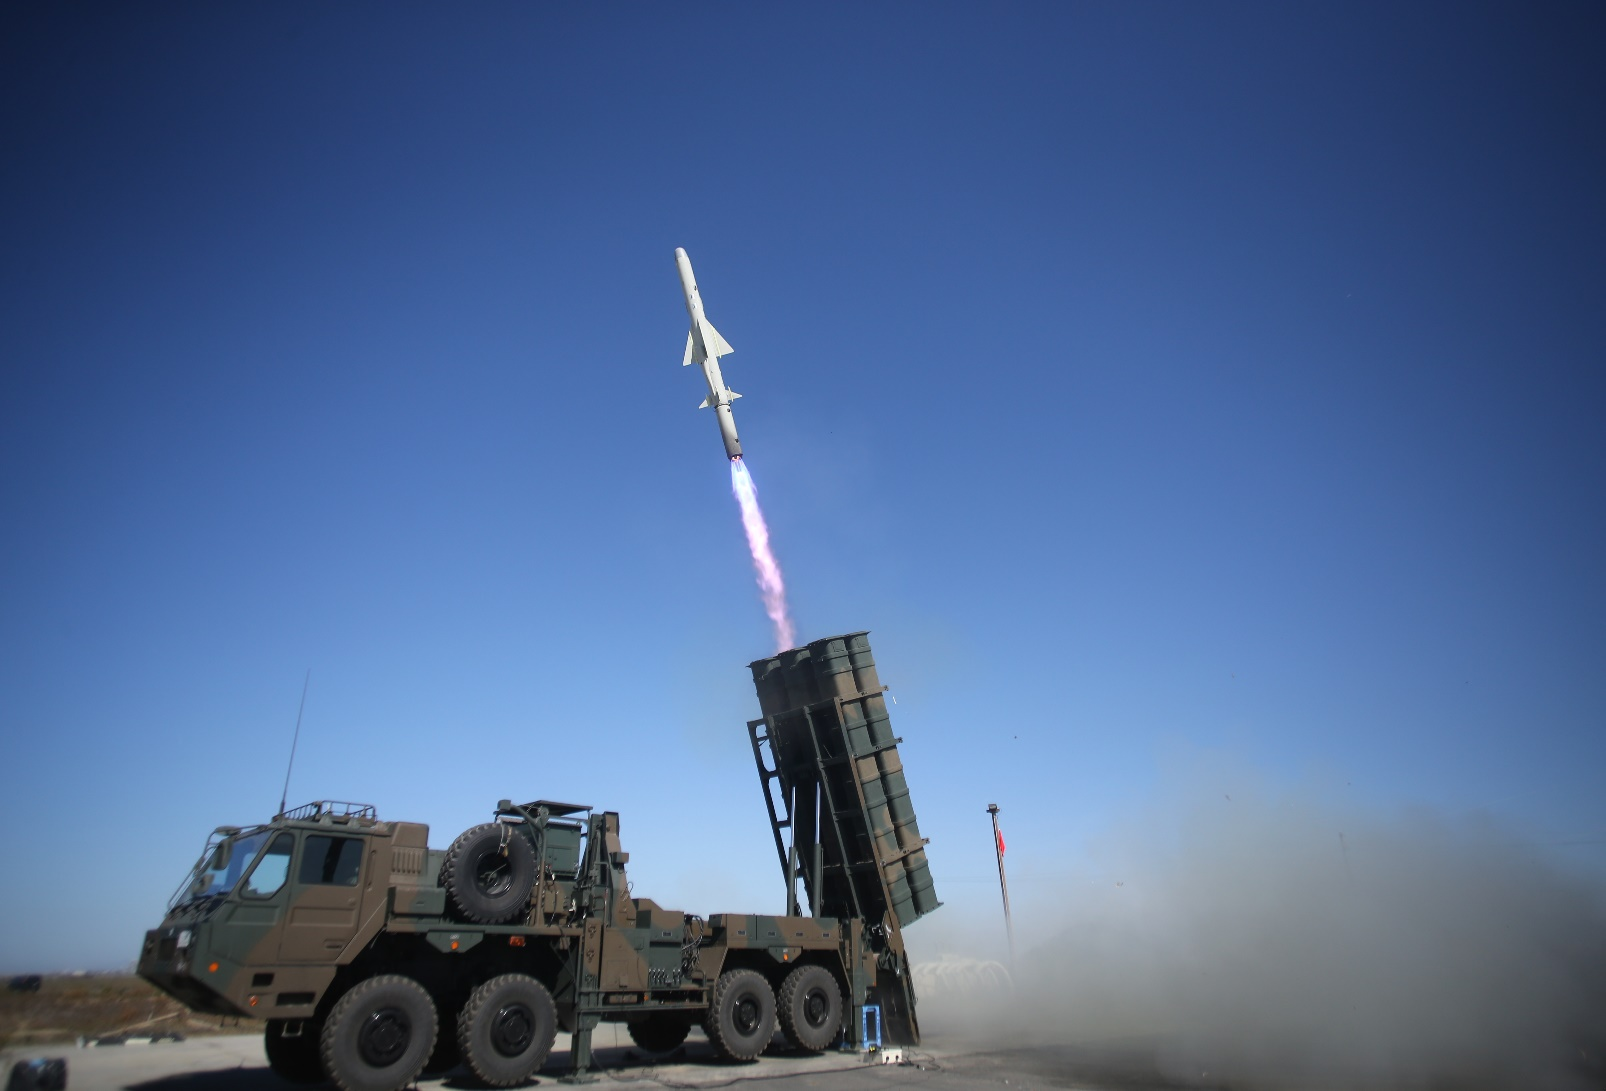 Japan Ground Self-Defense Force Type 12 Surface-to-Ship Missile